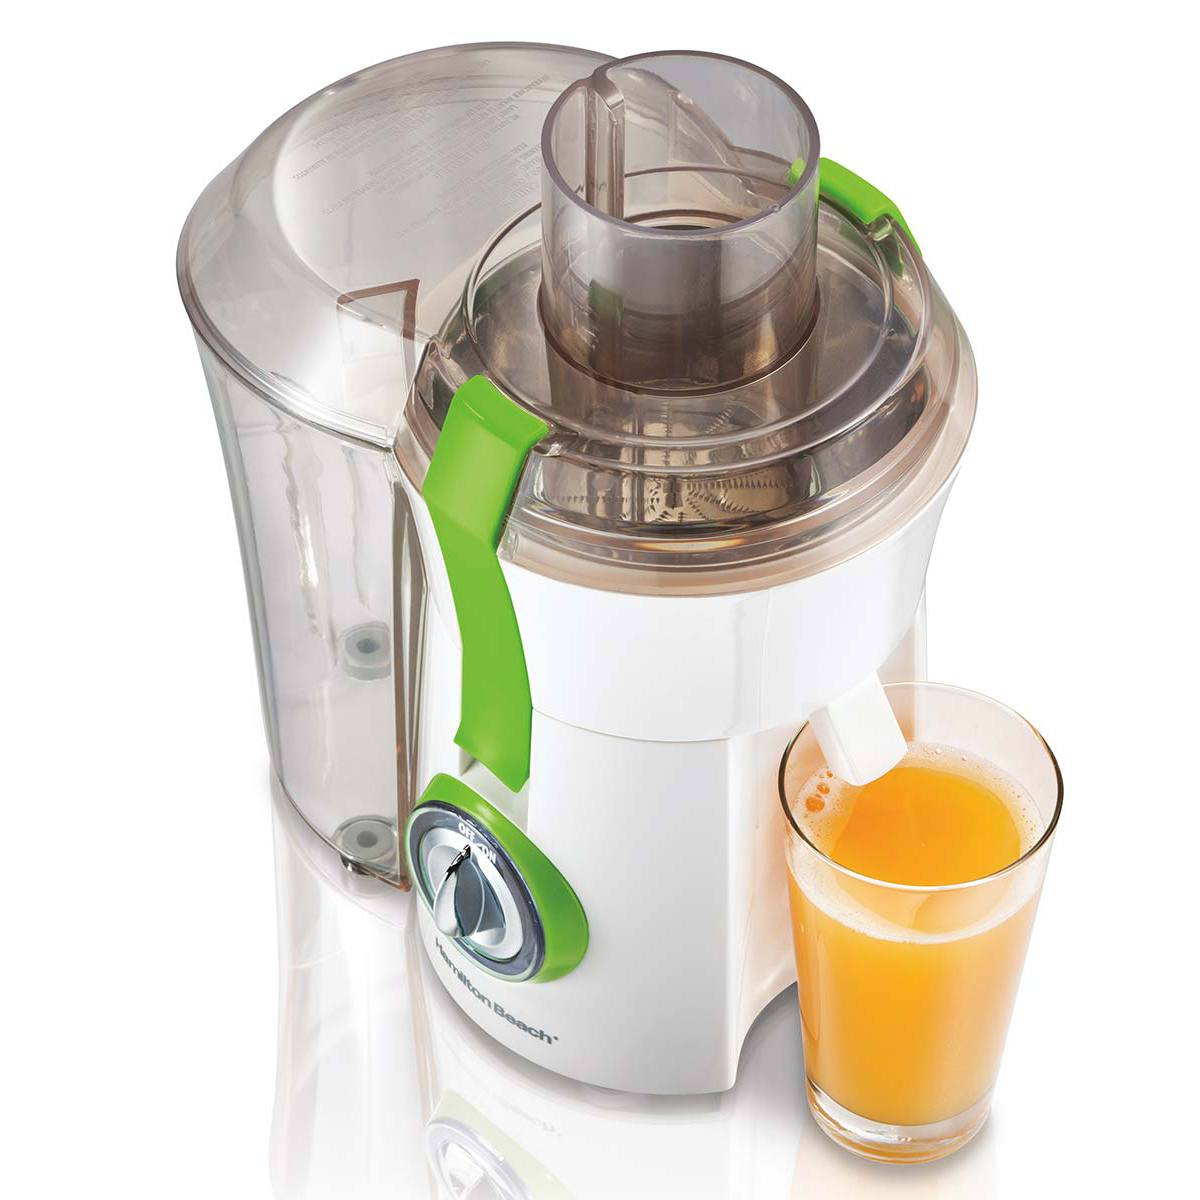 Cook And Baker Slow Juicer Test : Hamilton Beach Big Mouth Juice Extractor - 67602